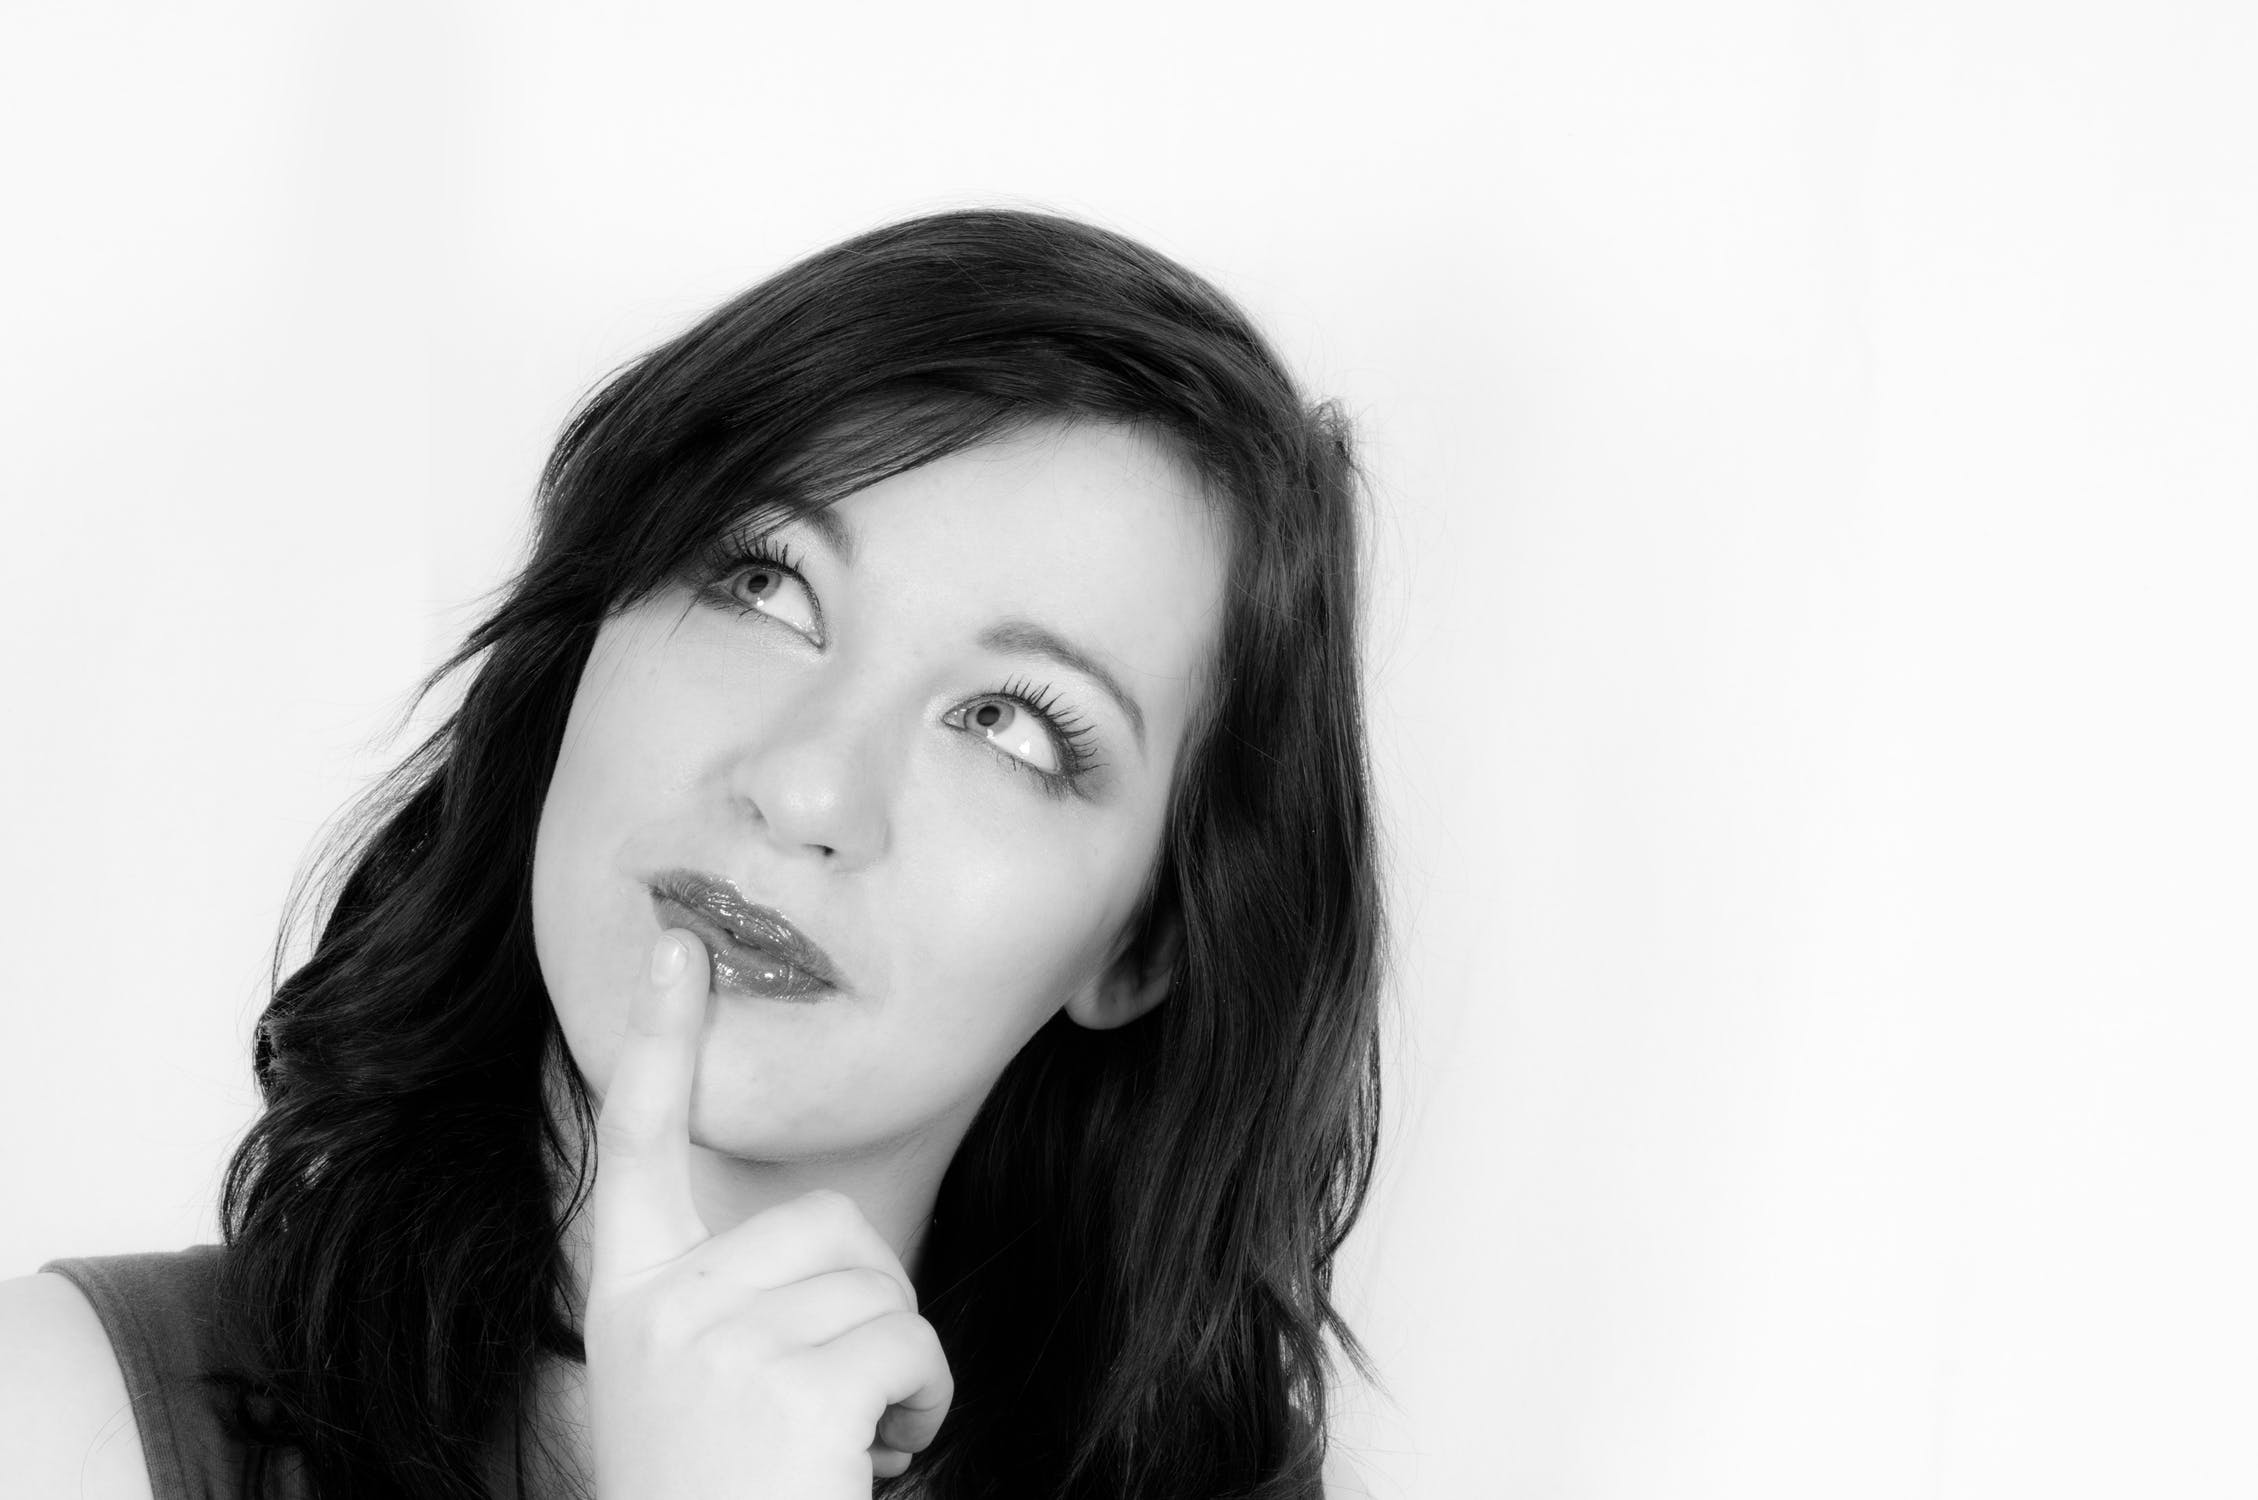 Girl thinking with finger on lip